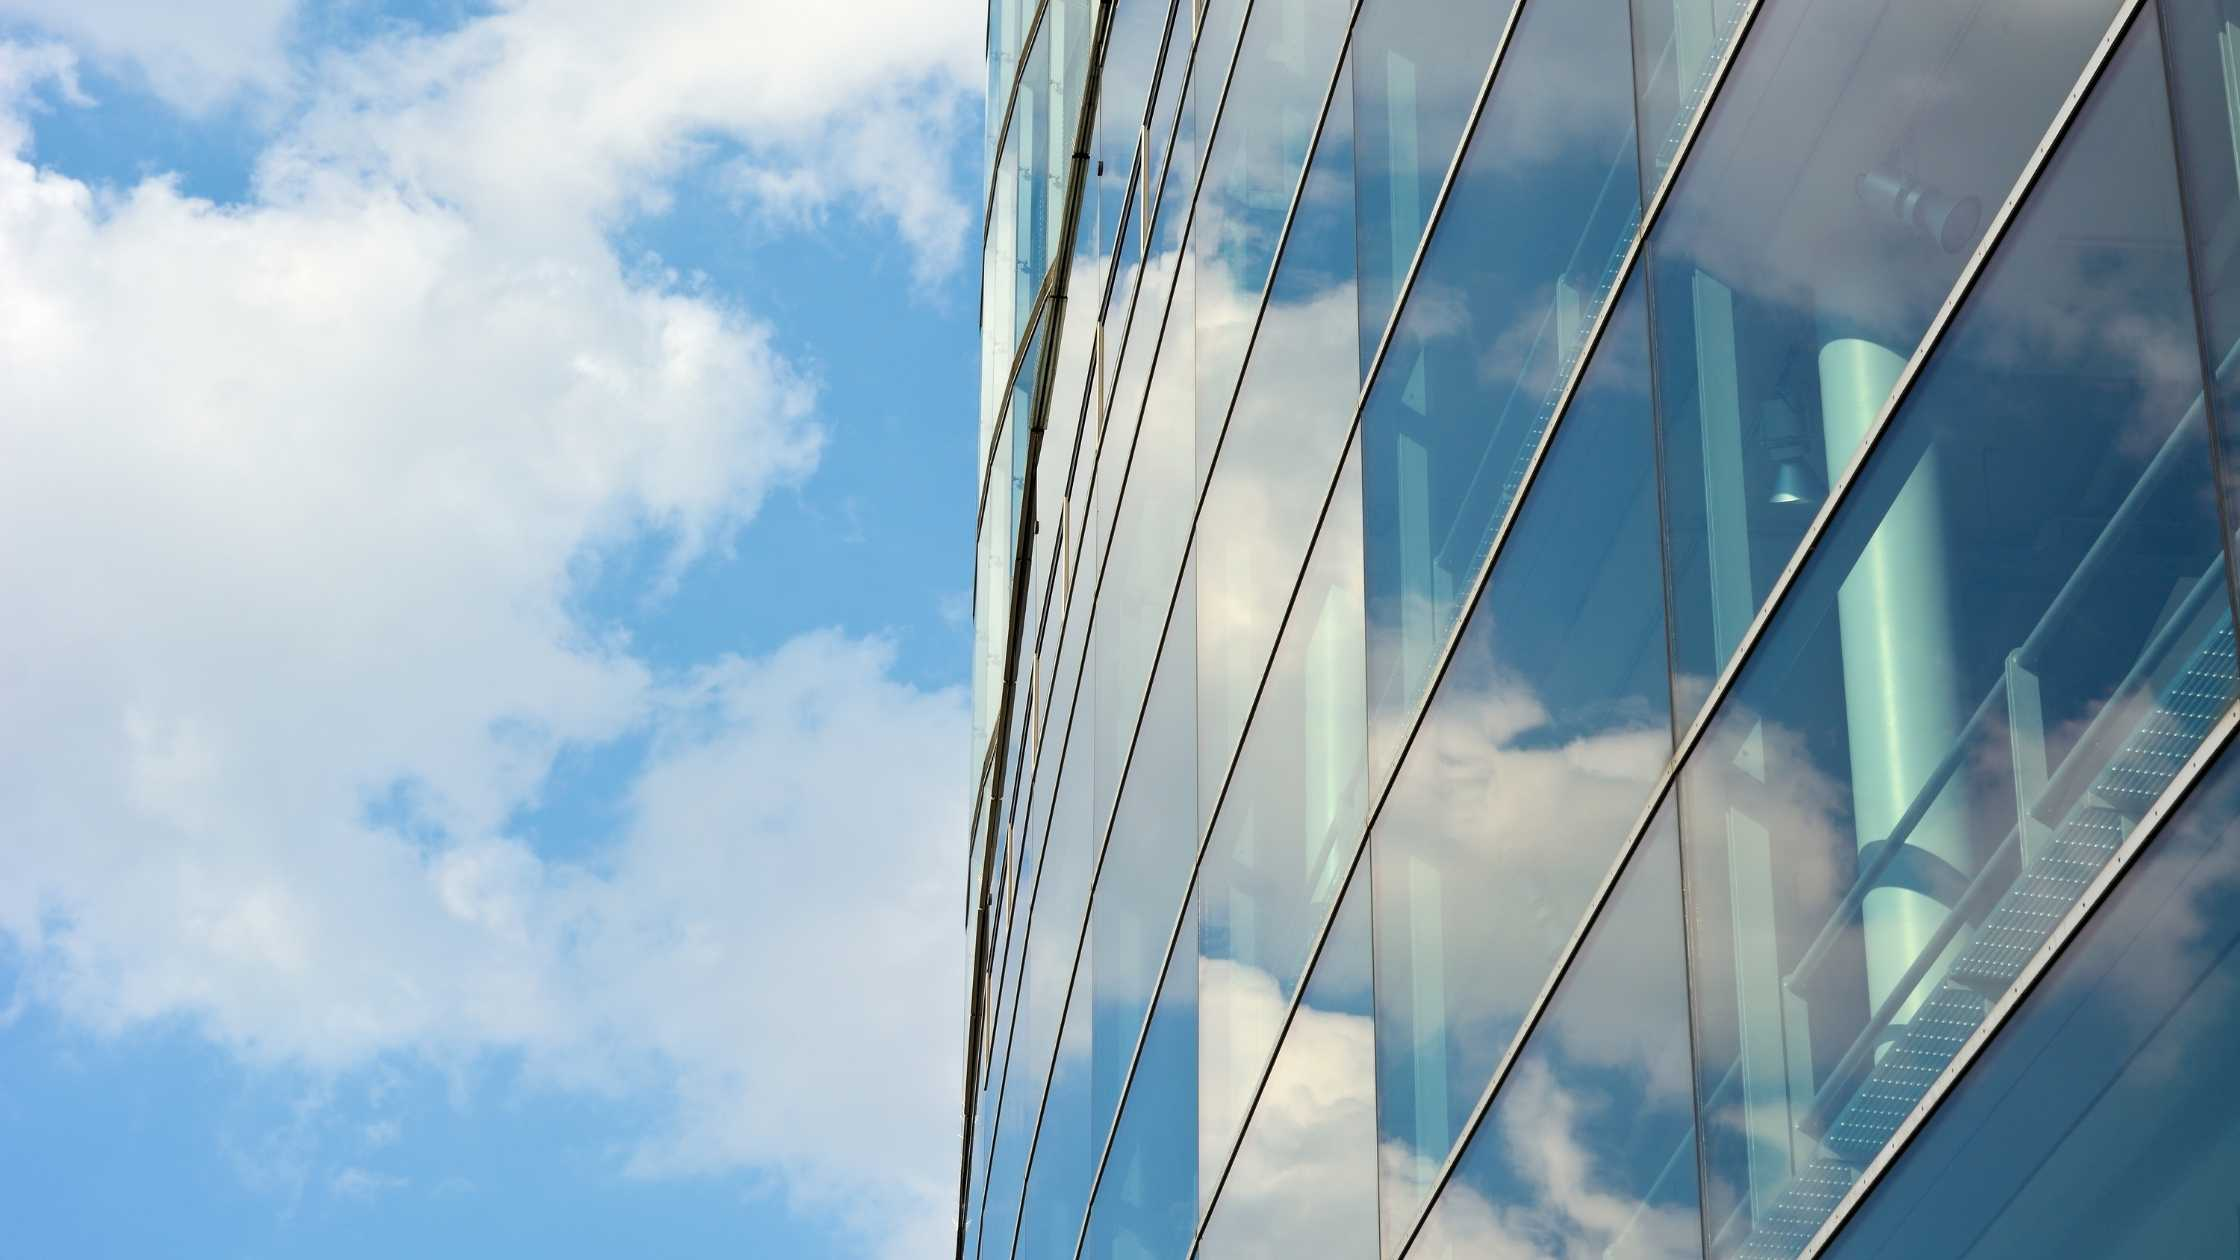 Contemporary architecture against cloudy blue sky